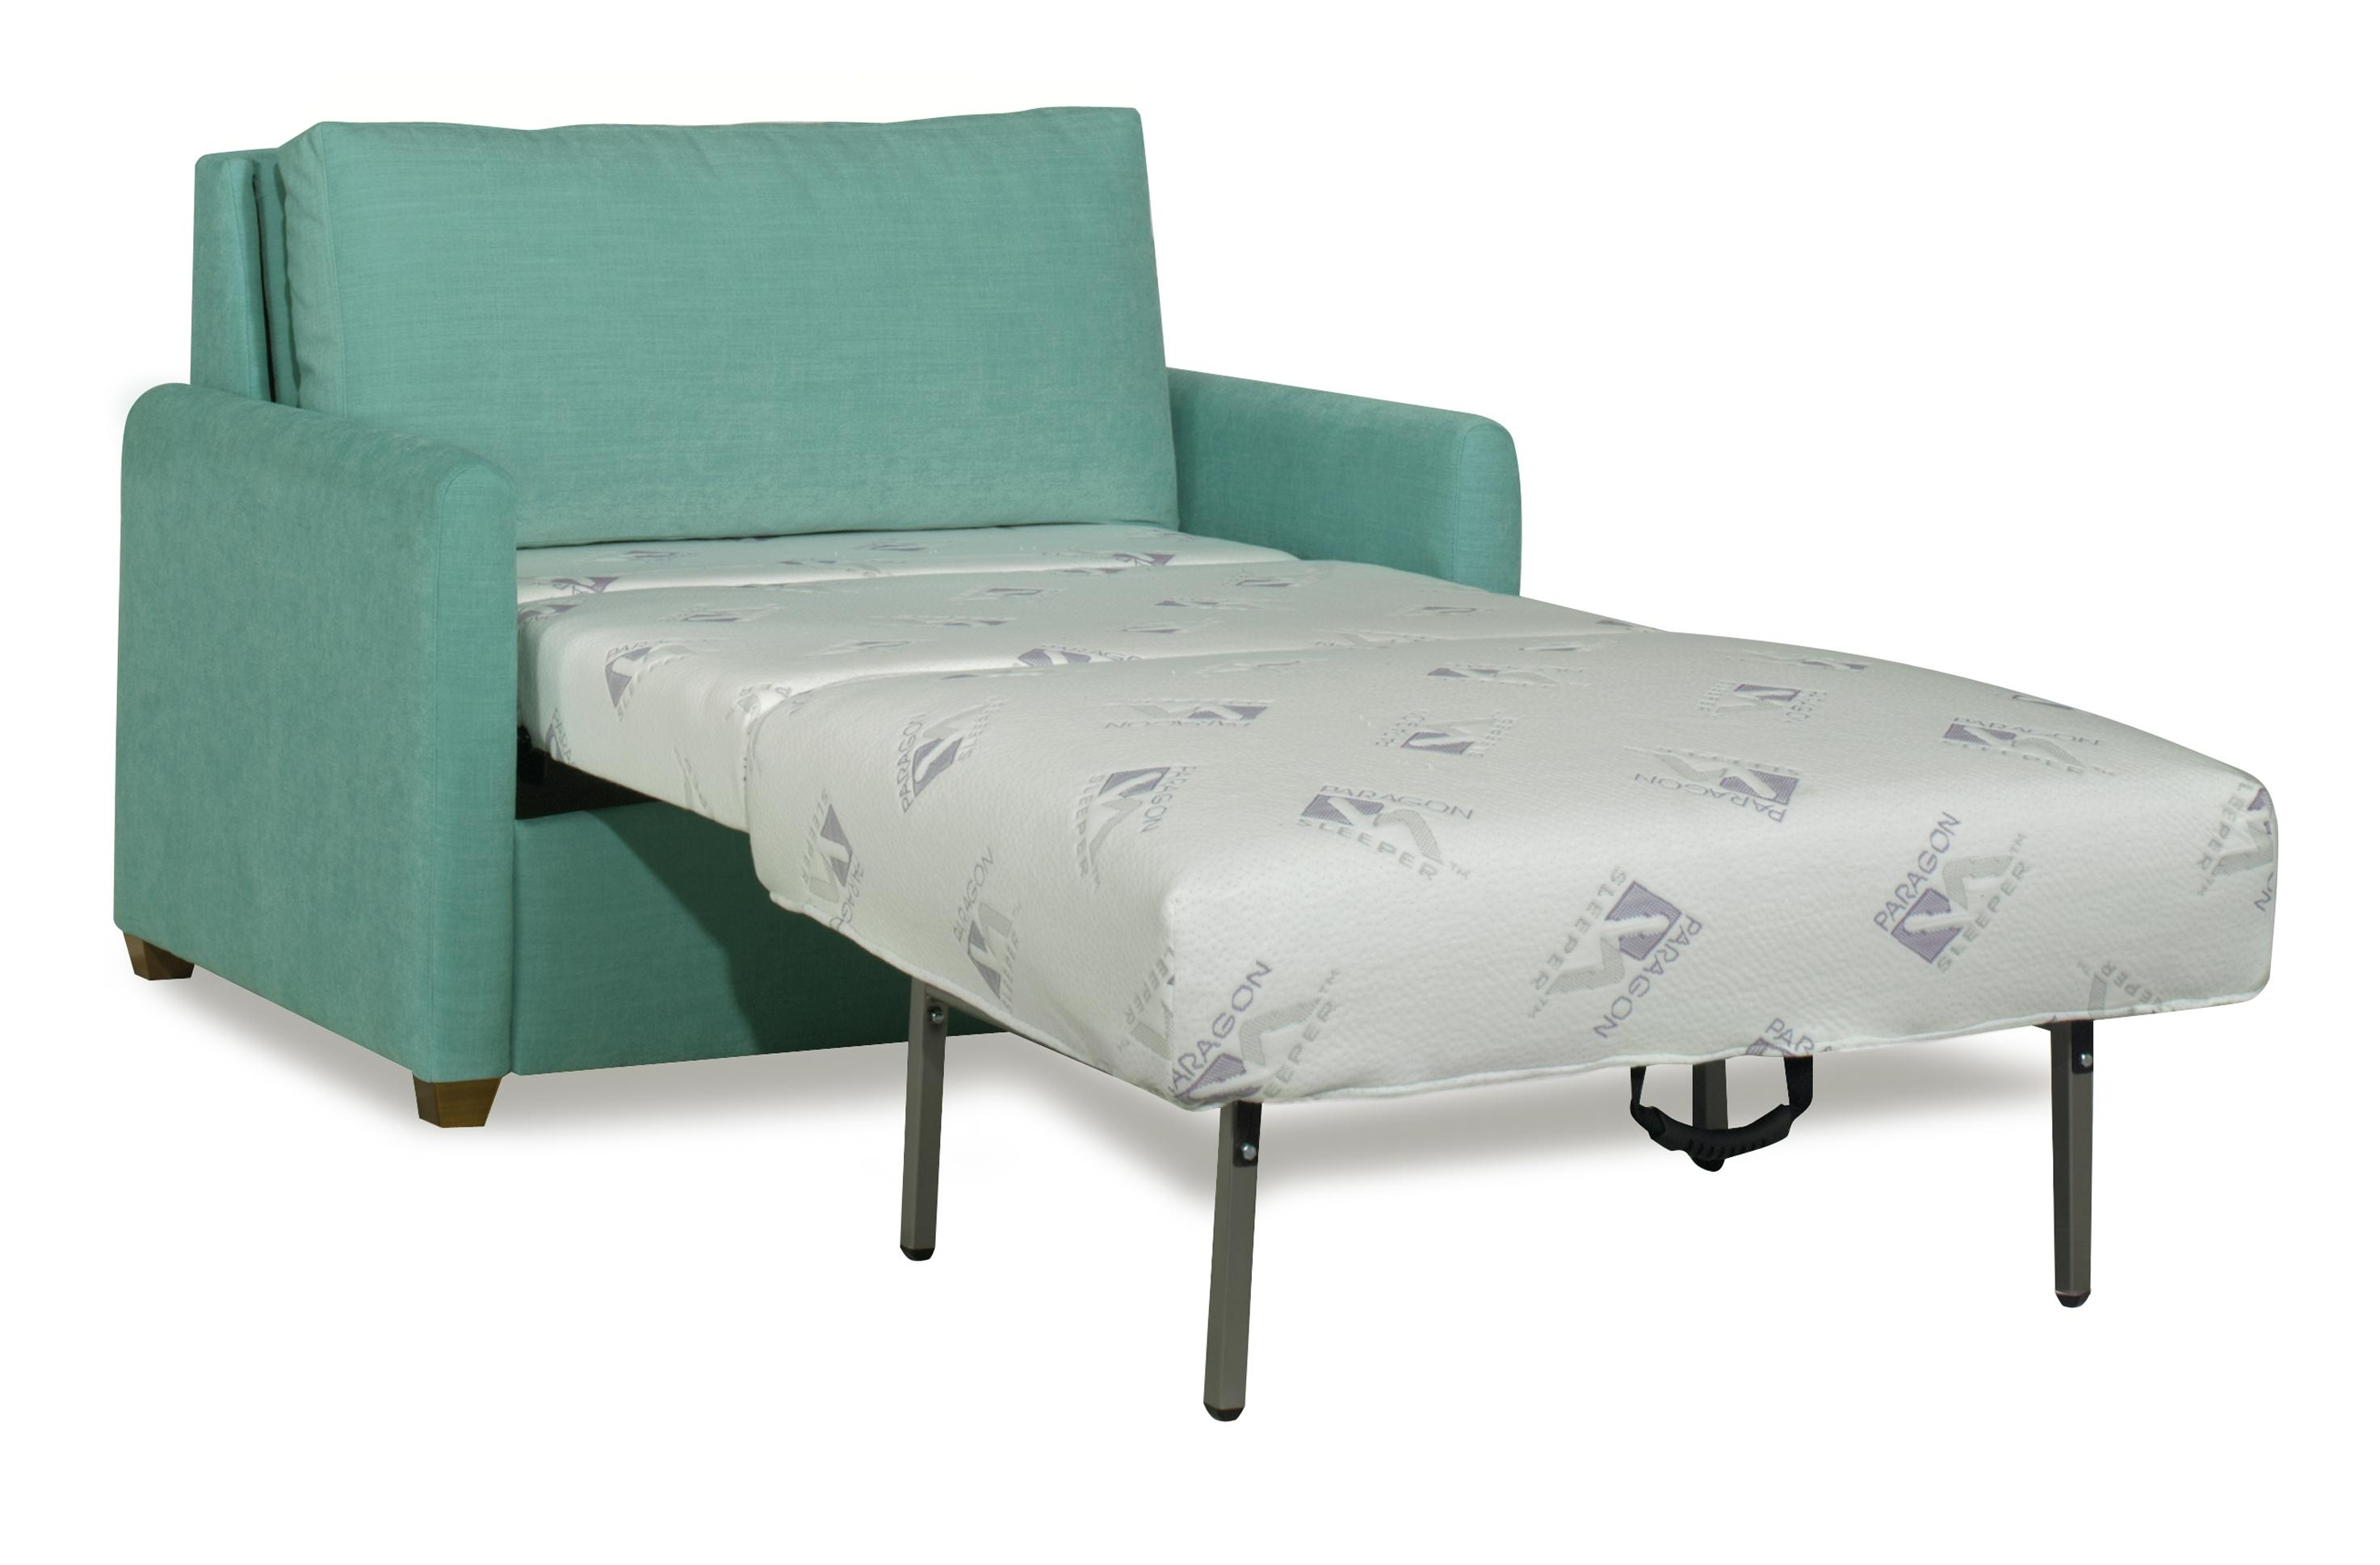 Sleeper Sofa Chair Set Designs Jopelli Flannel Sleeper Sofa And For Folding Sofa Chairs (Image 12 of 20)